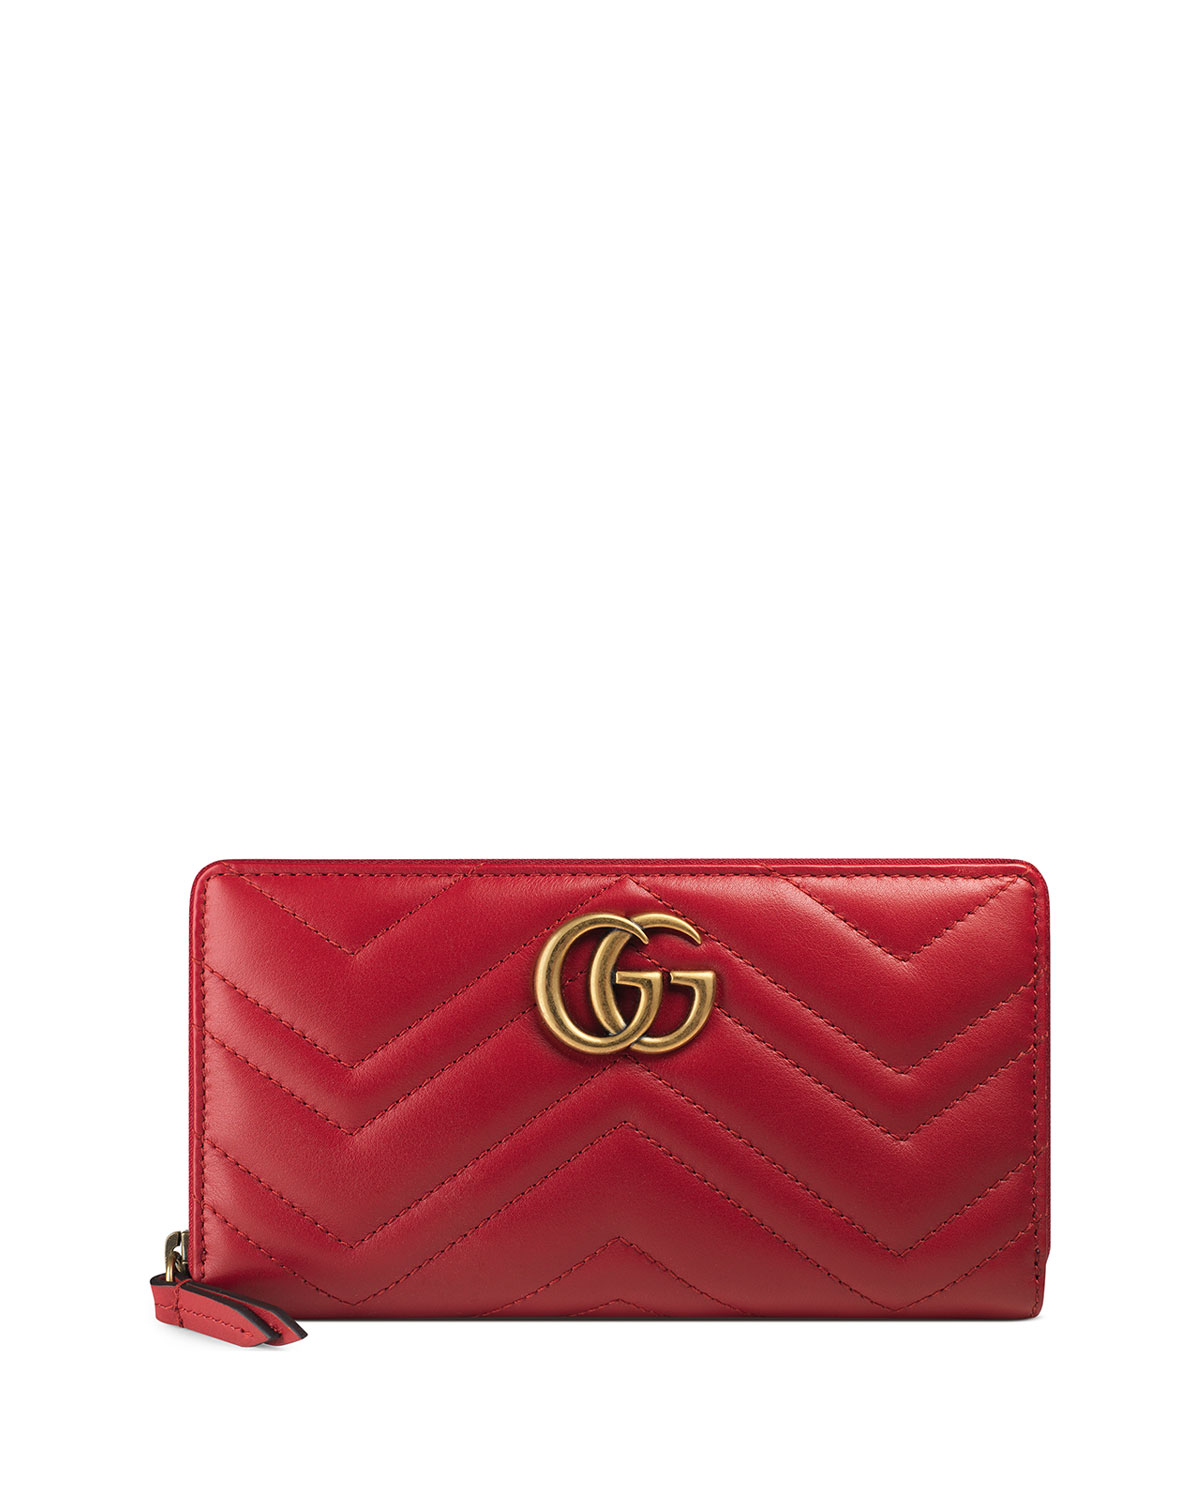 da1575d12cb0 Gucci GG Marmont Medium Quilted Zip Wallet, Red | Neiman Marcus